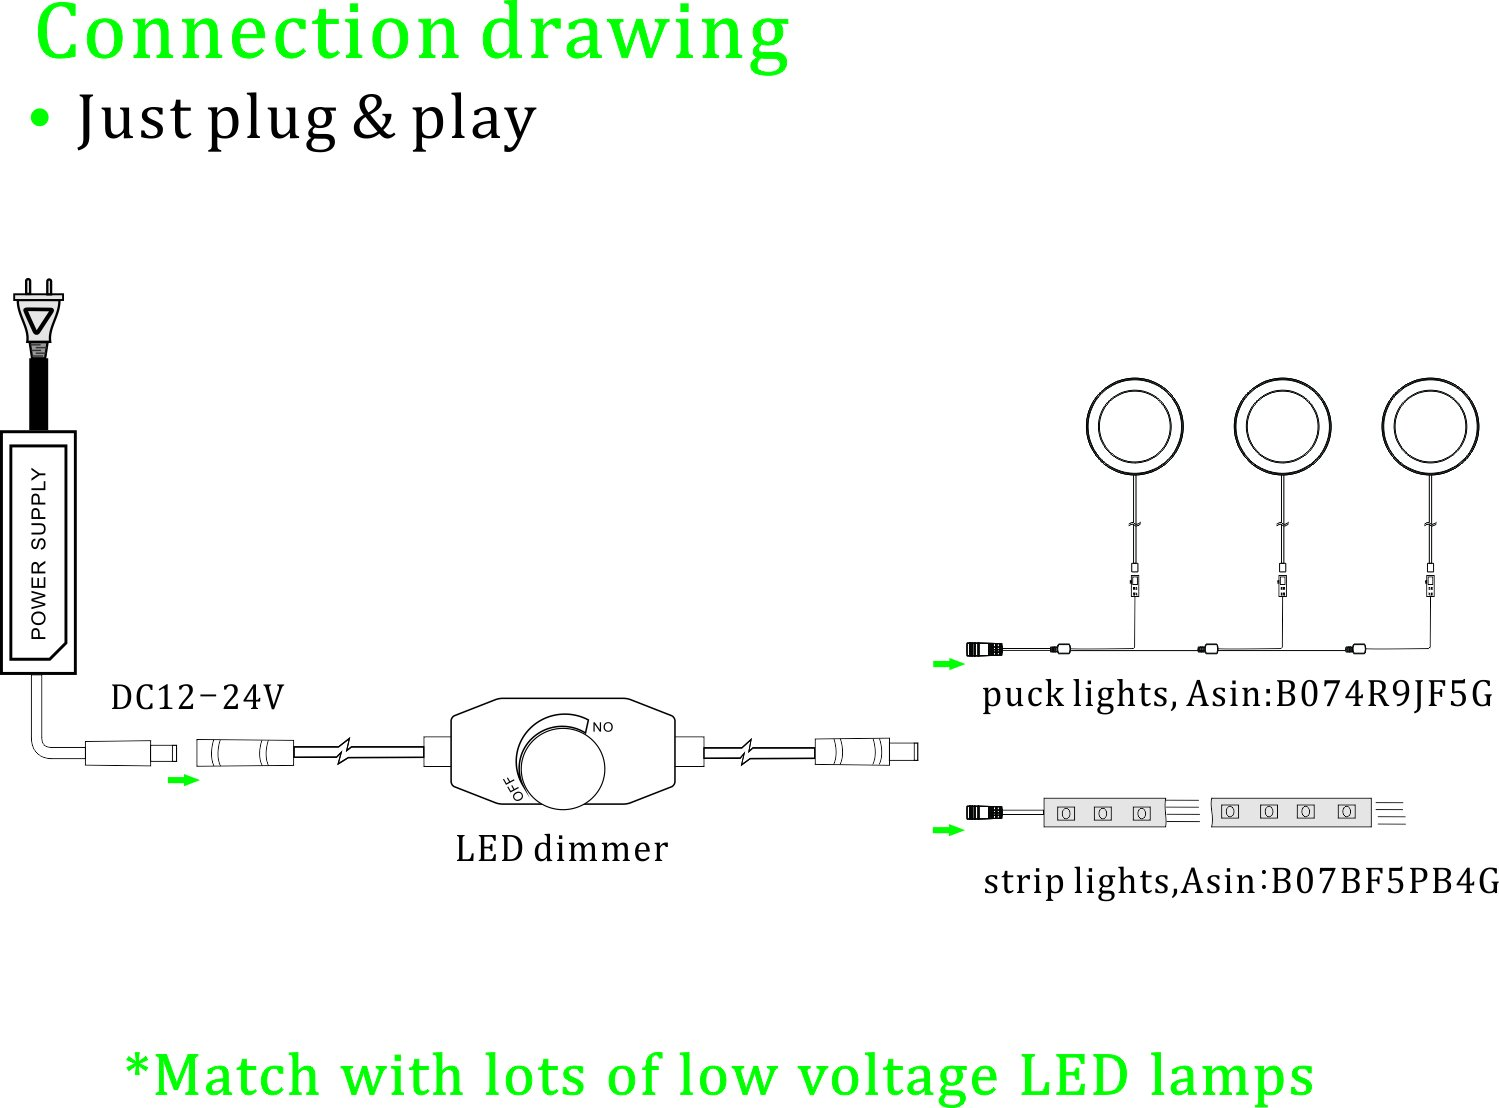 Dc 12v 24v 4a Pwm Dimmer Schalter Kontrolleur Fr Single Color Led Schematic Of The Power Circuit Licht Streifen Lampe Band Und Andere Beleuchtung Gerte Wei